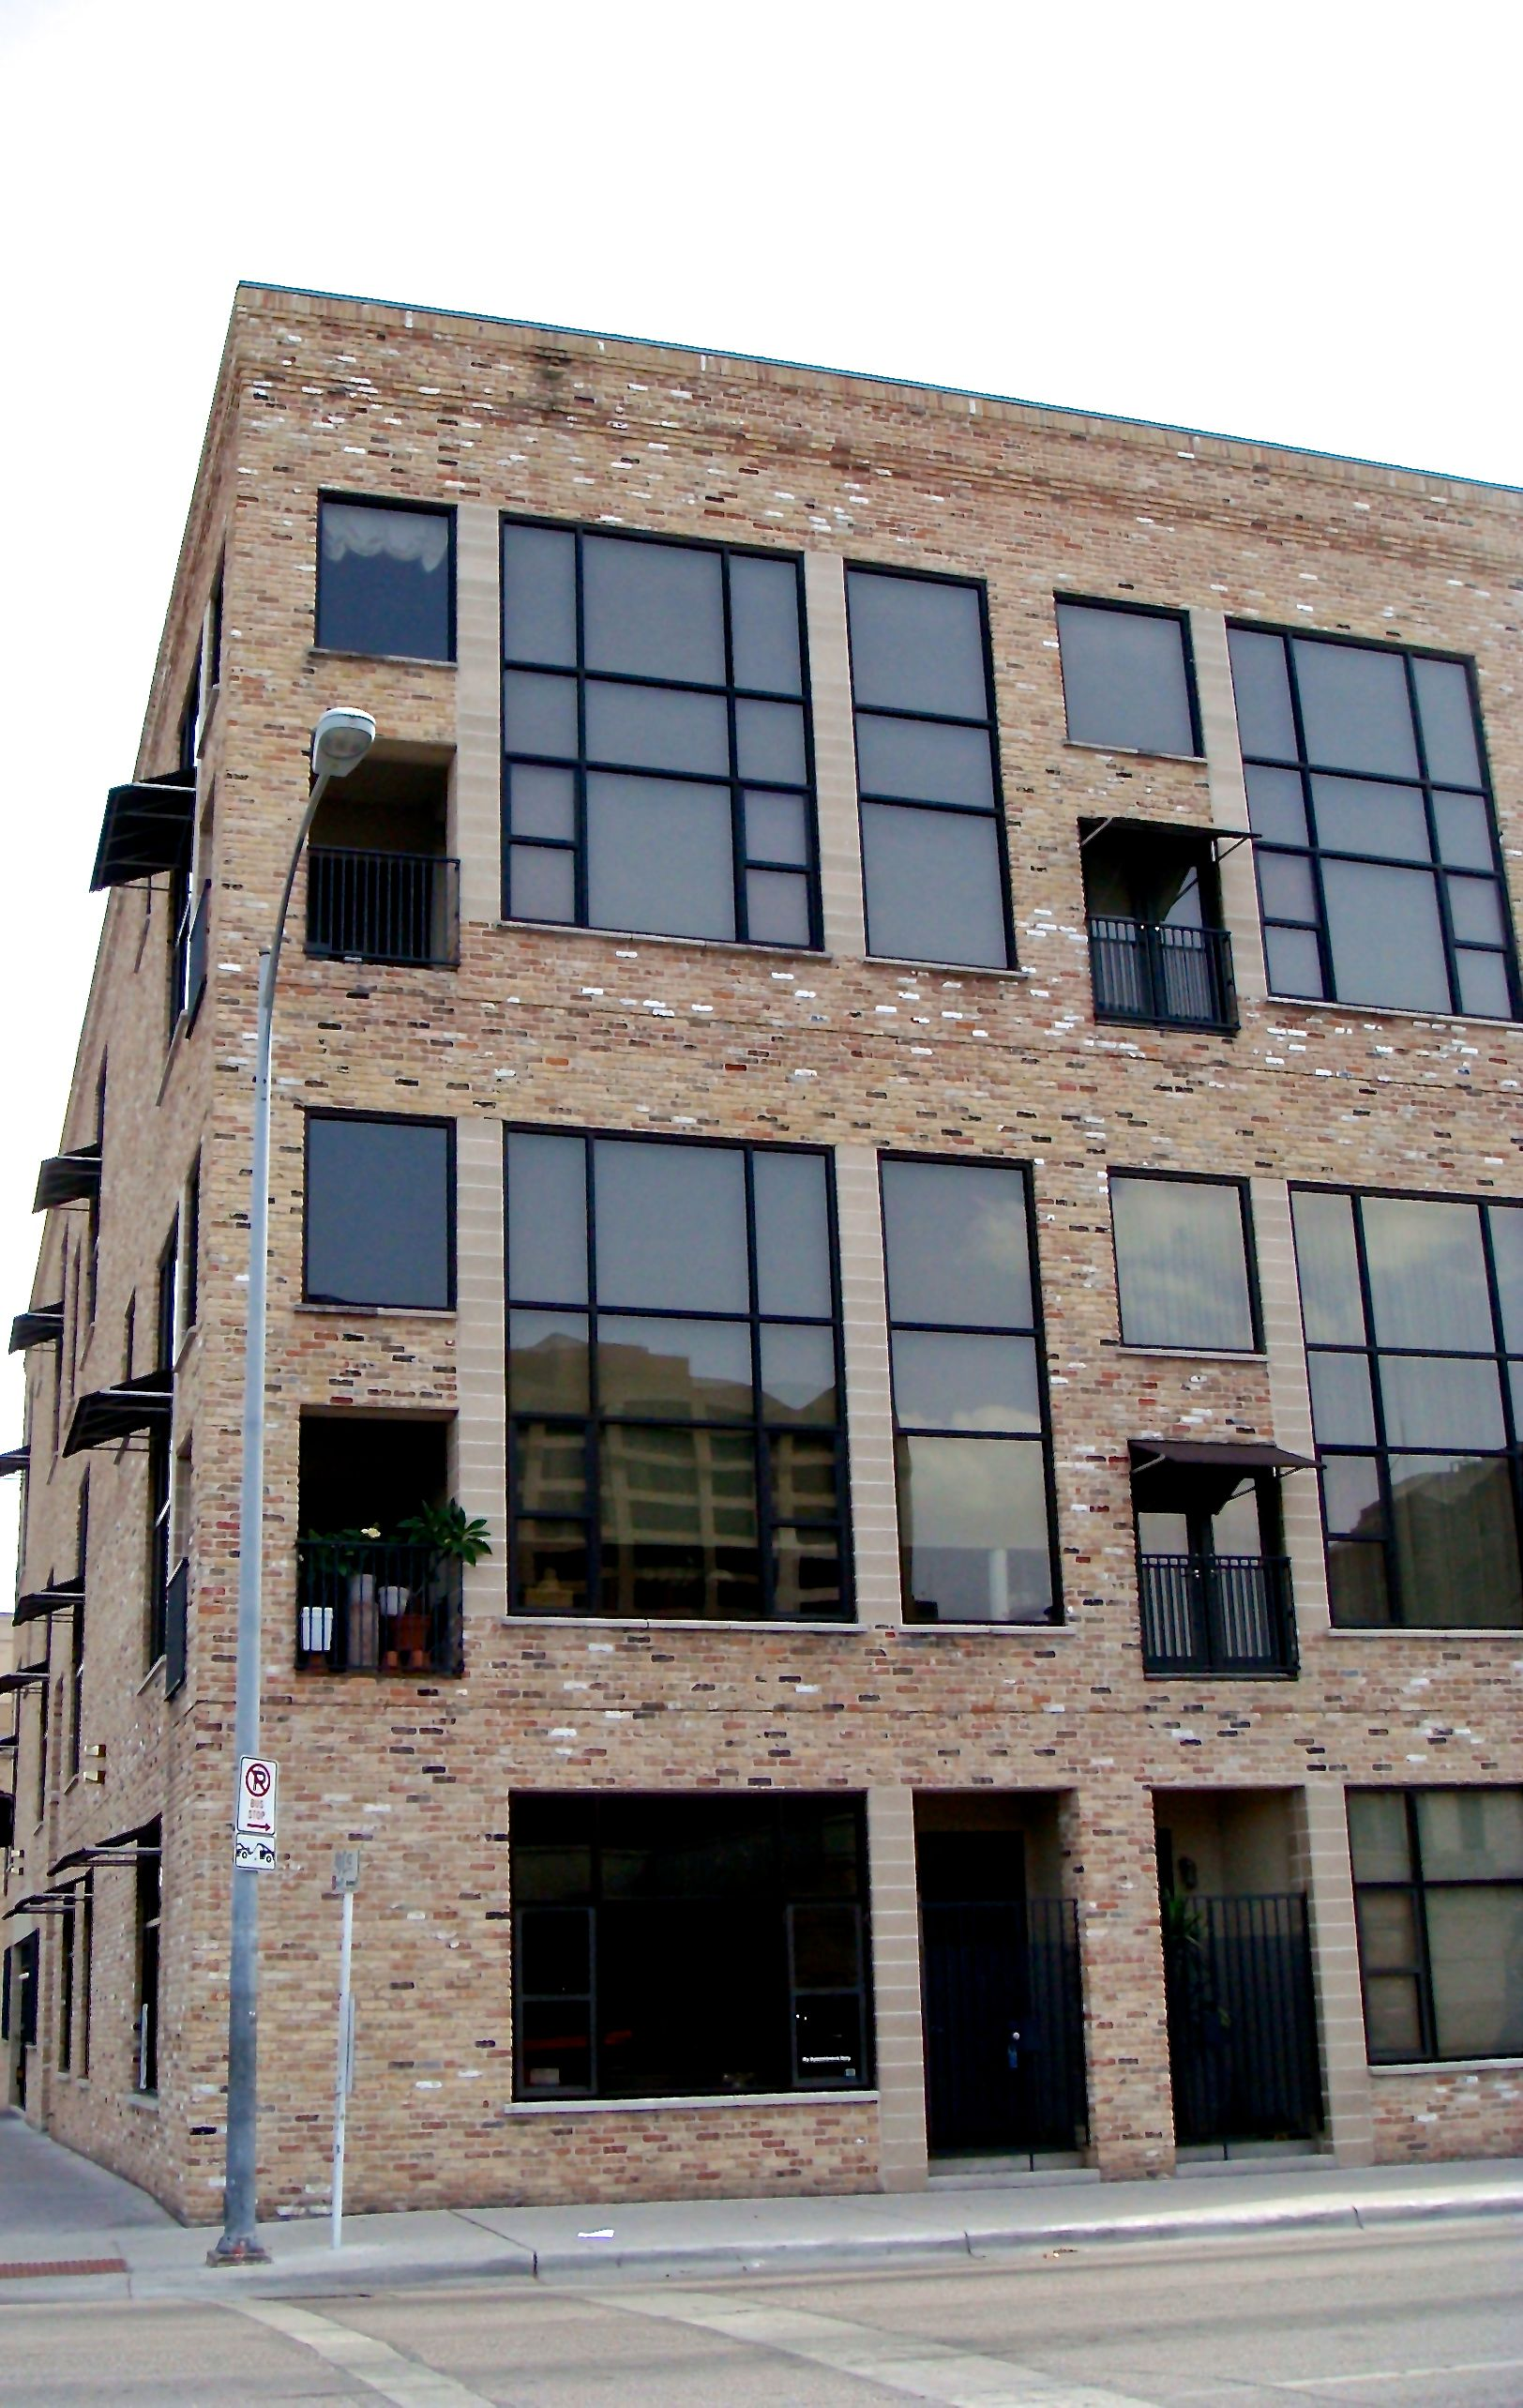 Brazos Lofts Ext Corner Jun2008 (edit image).jpg